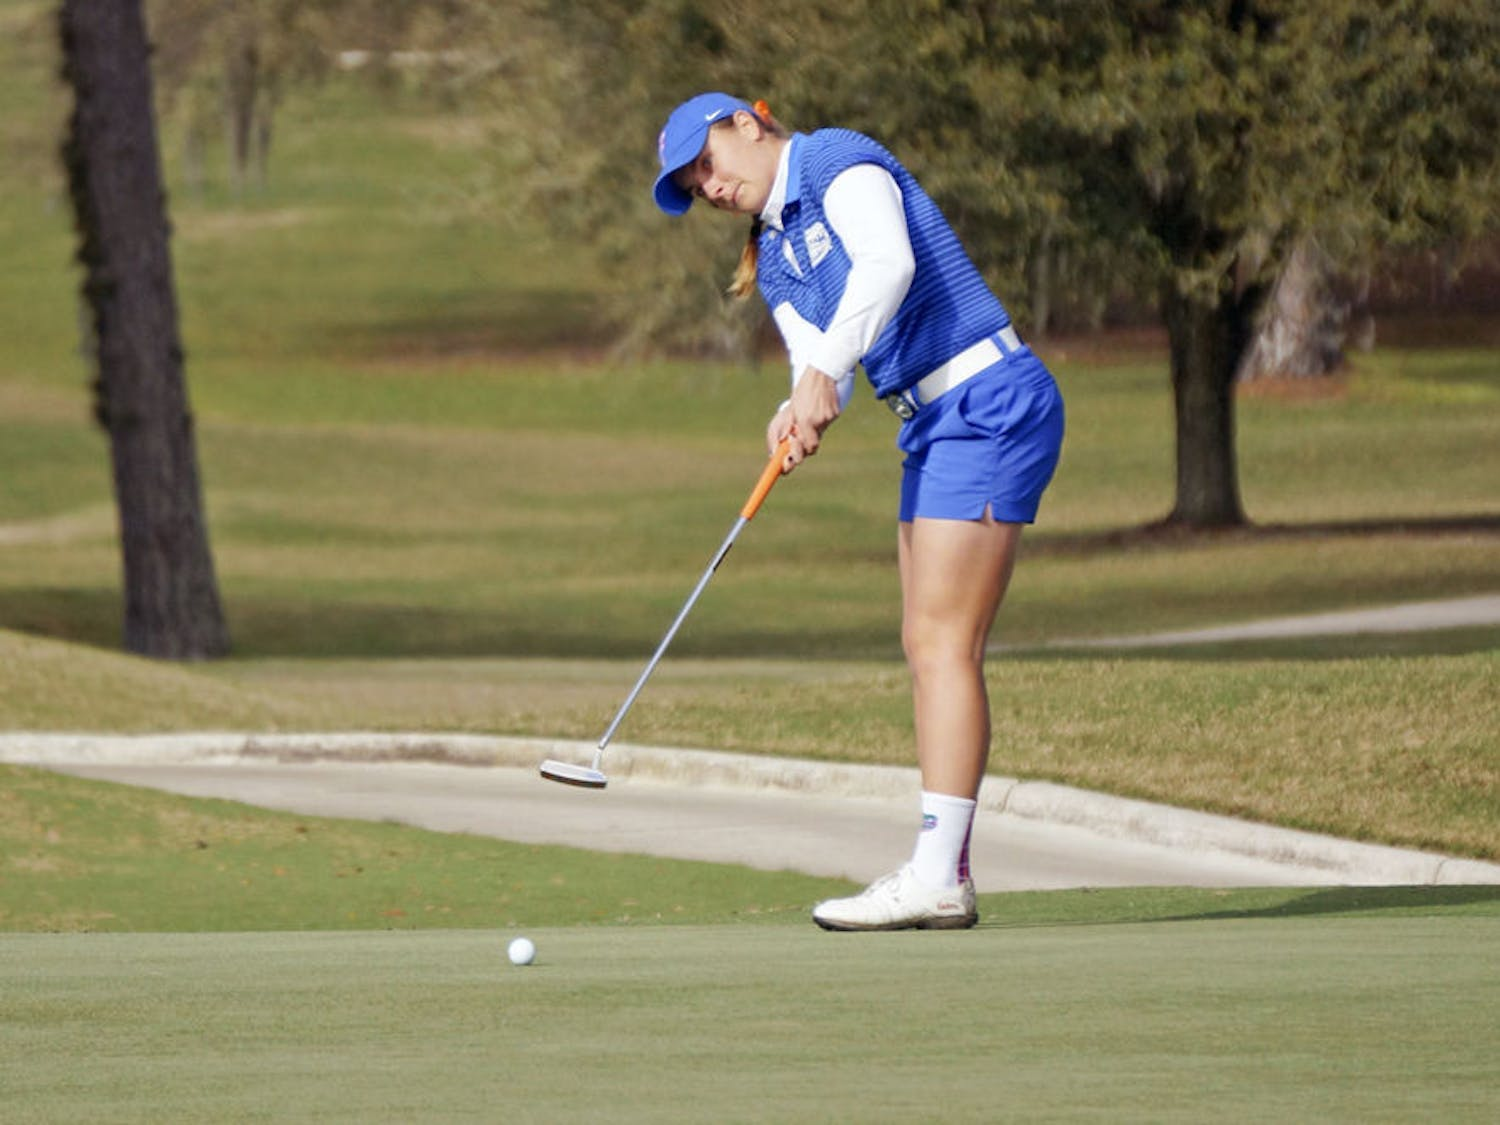 Taylor Tomlinson putts during the 2015 SunTrust Gator Invitational at UF's Mark Bostick Golf Course.